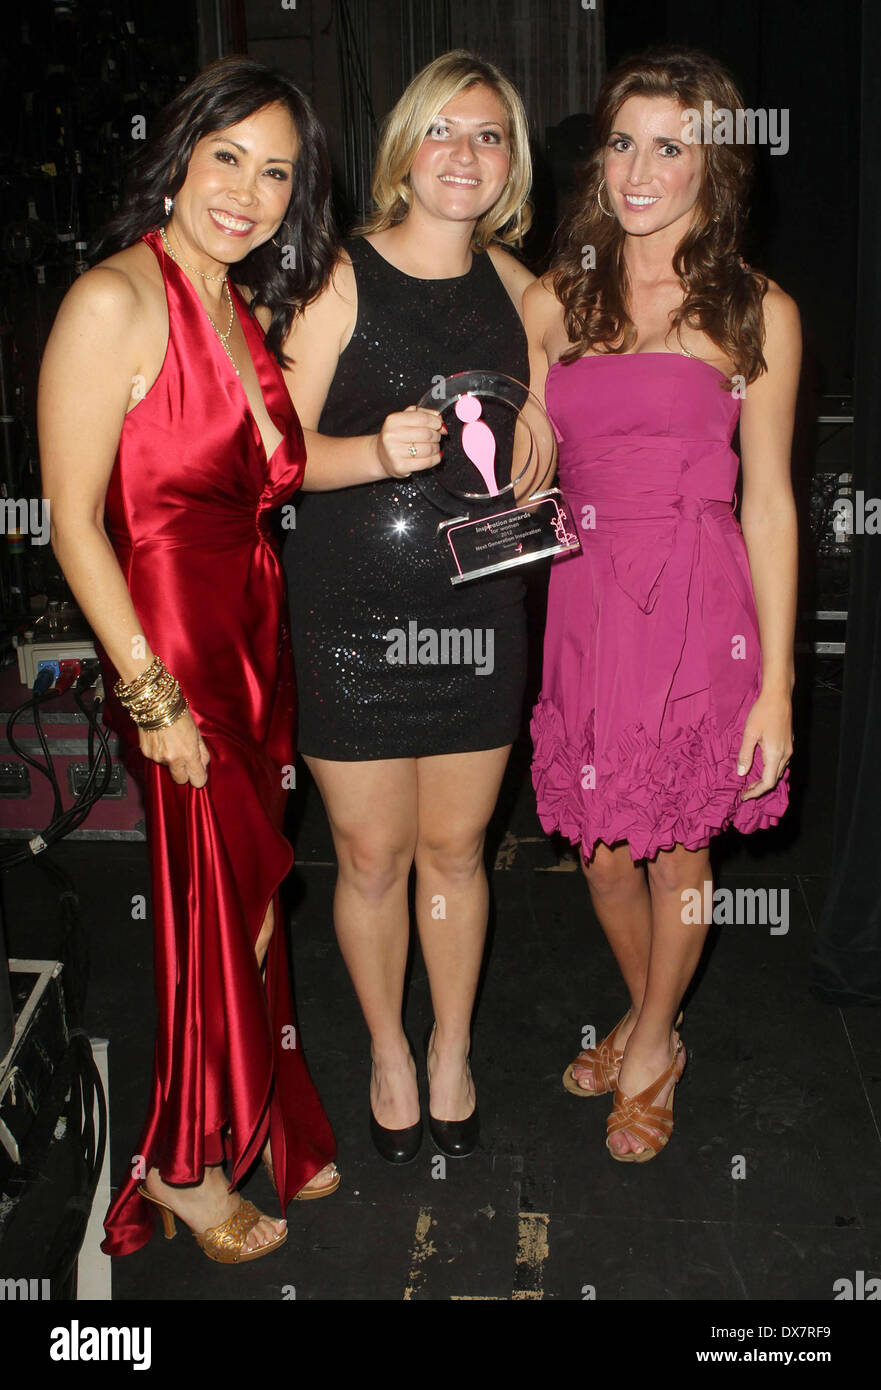 Susan Hirasuna, Meredith Perry, Abbey Curran 2nd Annual Inspiration Women Awards to Benefit The Susan G. Komen For The Cure held at Royce Hall, UCLA - Afterparty Westwood, California - 04.11.12 Featuring: Susan Hirasuna,Meredith Perry,Abbey Curran Where: Los Angeles, California, United States When: 04 Nov 2012 - Stock Image